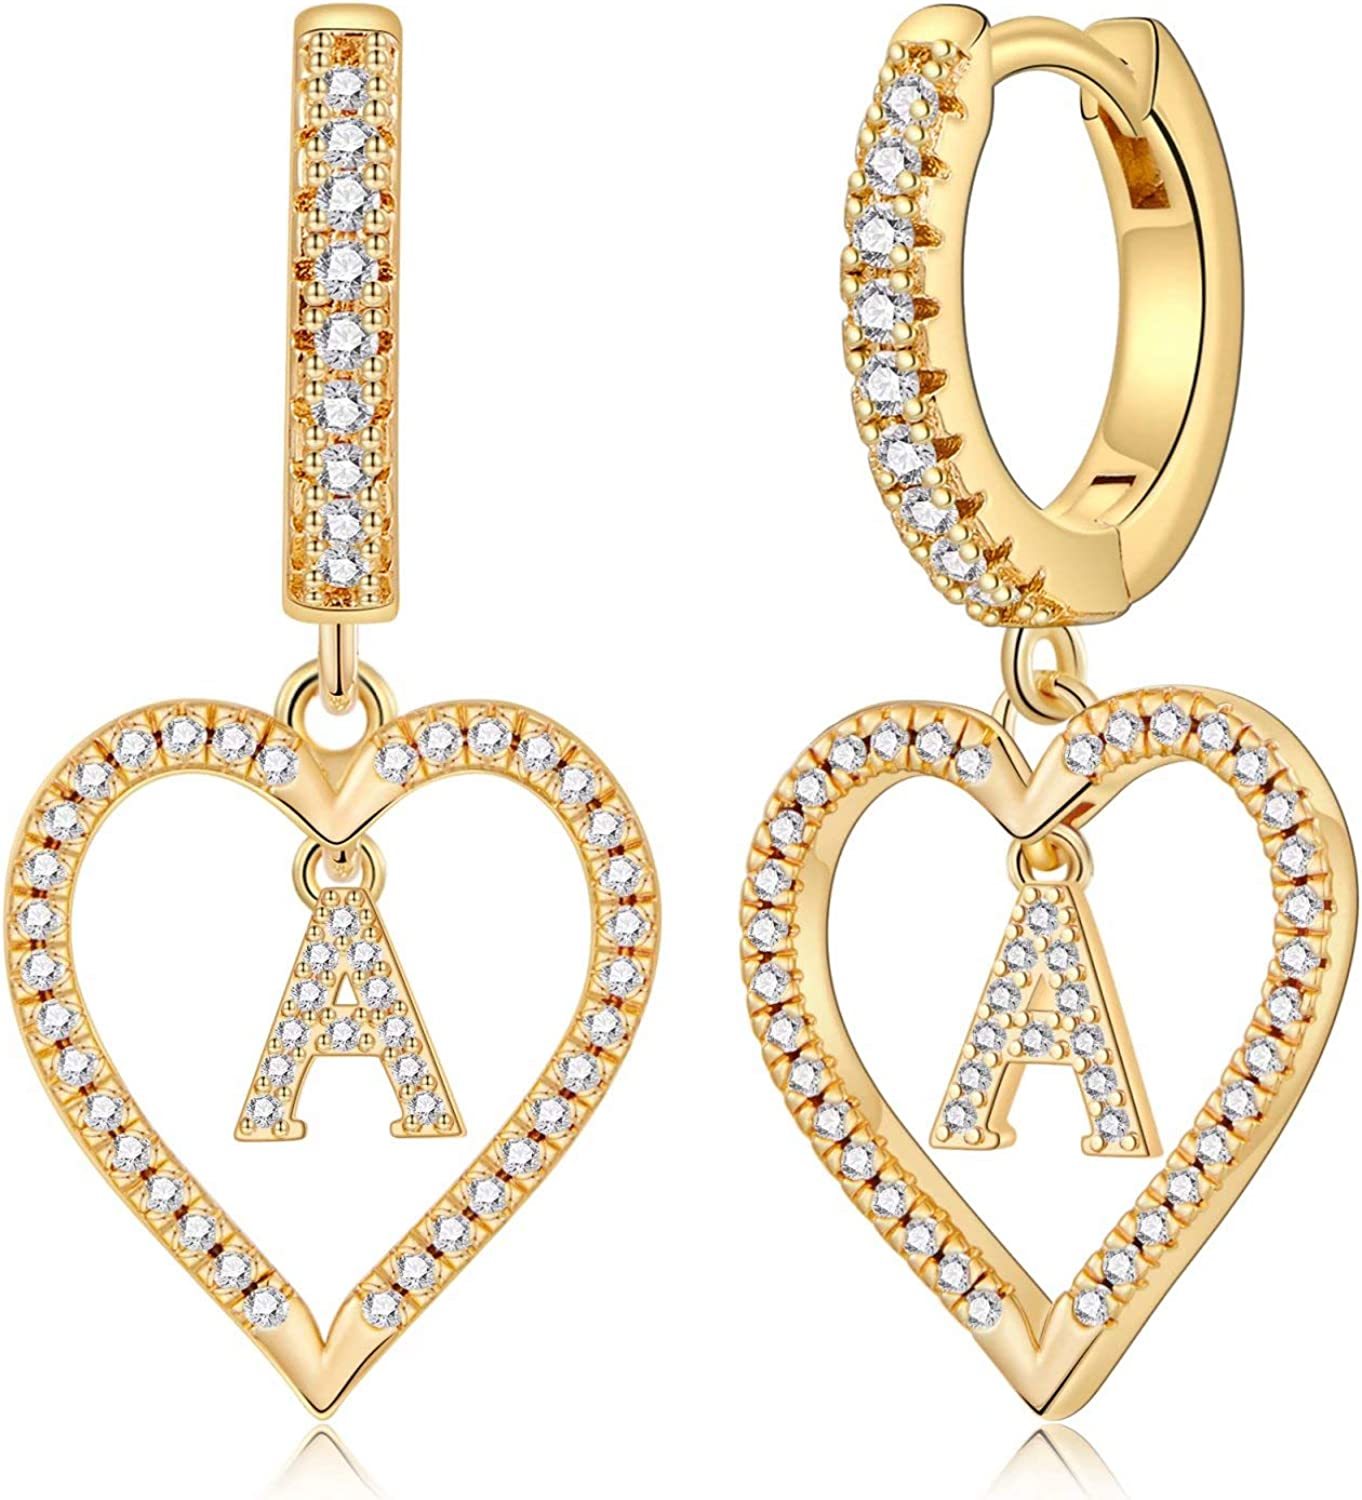 925 Sterling Silver Post Hypoallergenic Small Huggie Hoop Earrings Gold Plated Cubic Zirconia Initial Earrings Jewelry Gifts for Girls Women Initial Earrings for Girls Women